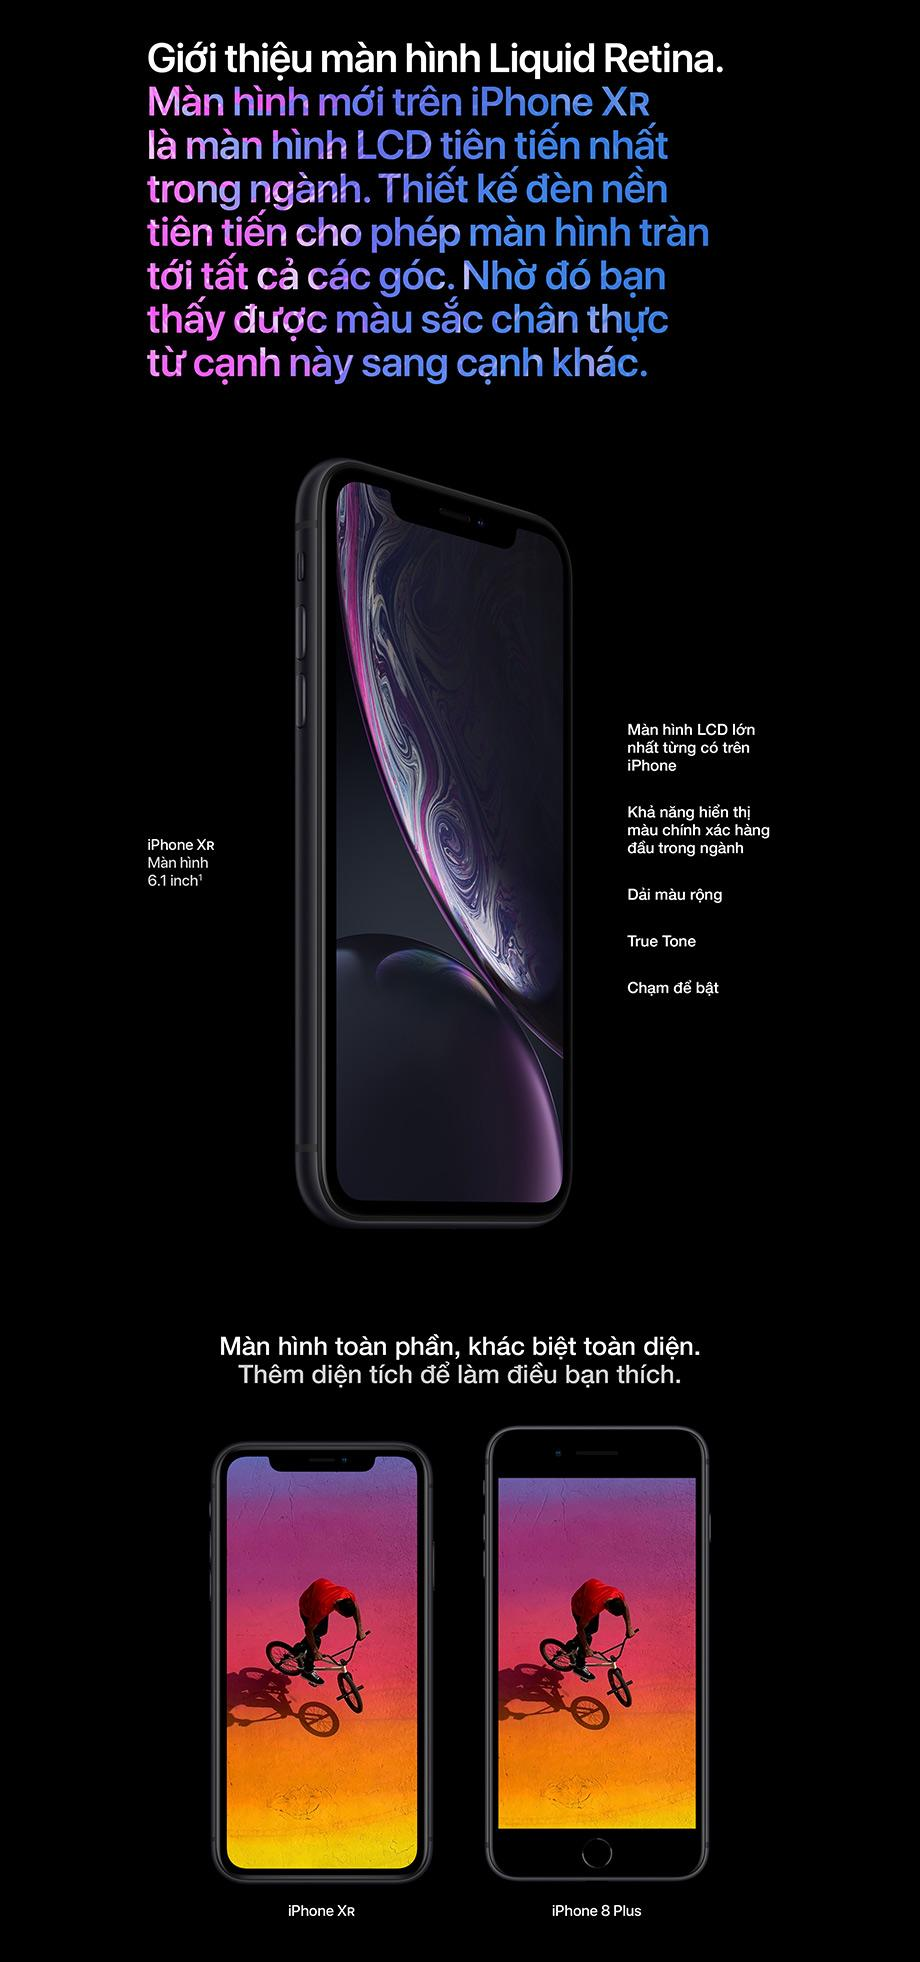 iPhone-XR-product-page_02.jpg